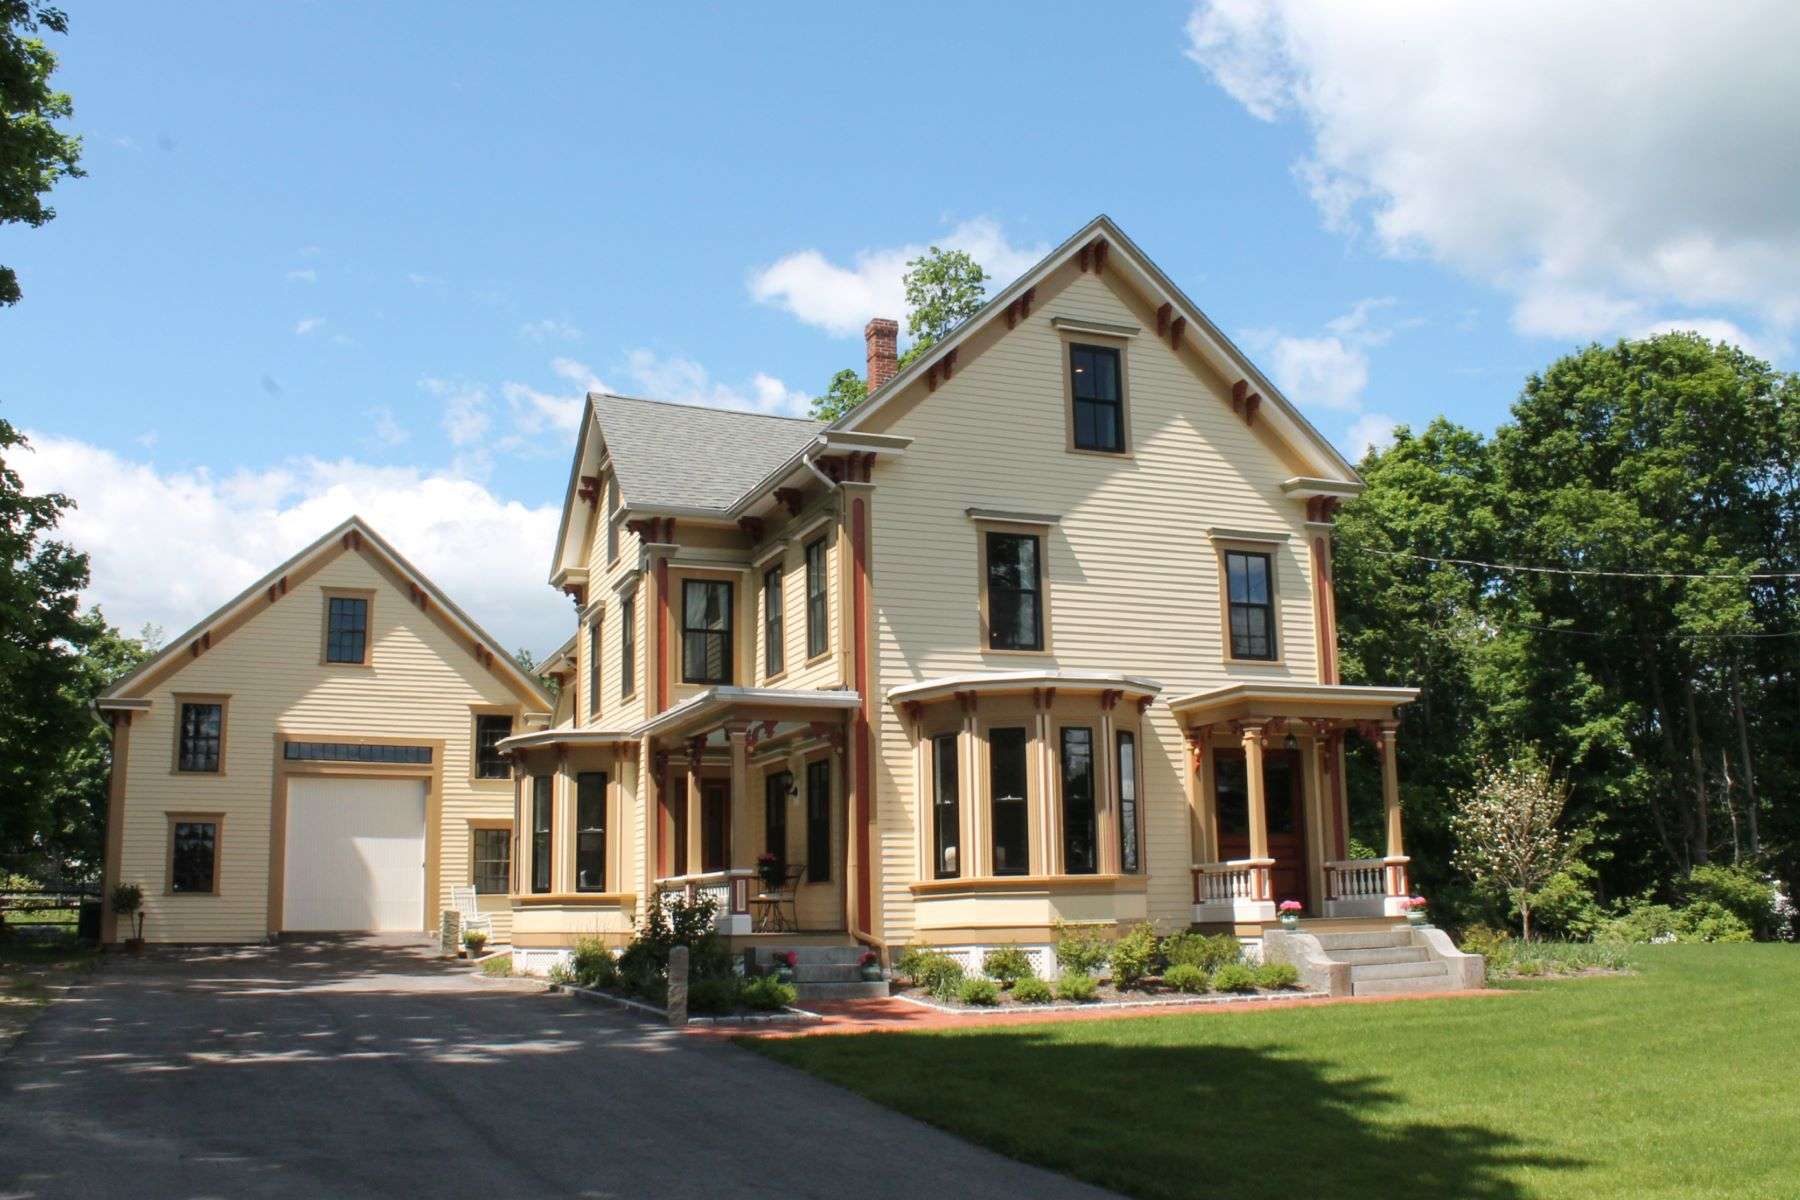 Single Family Home for Sale at Meticulously Restored and Renovated! 4 Graniteville Road Westford, Massachusetts 01886 United States